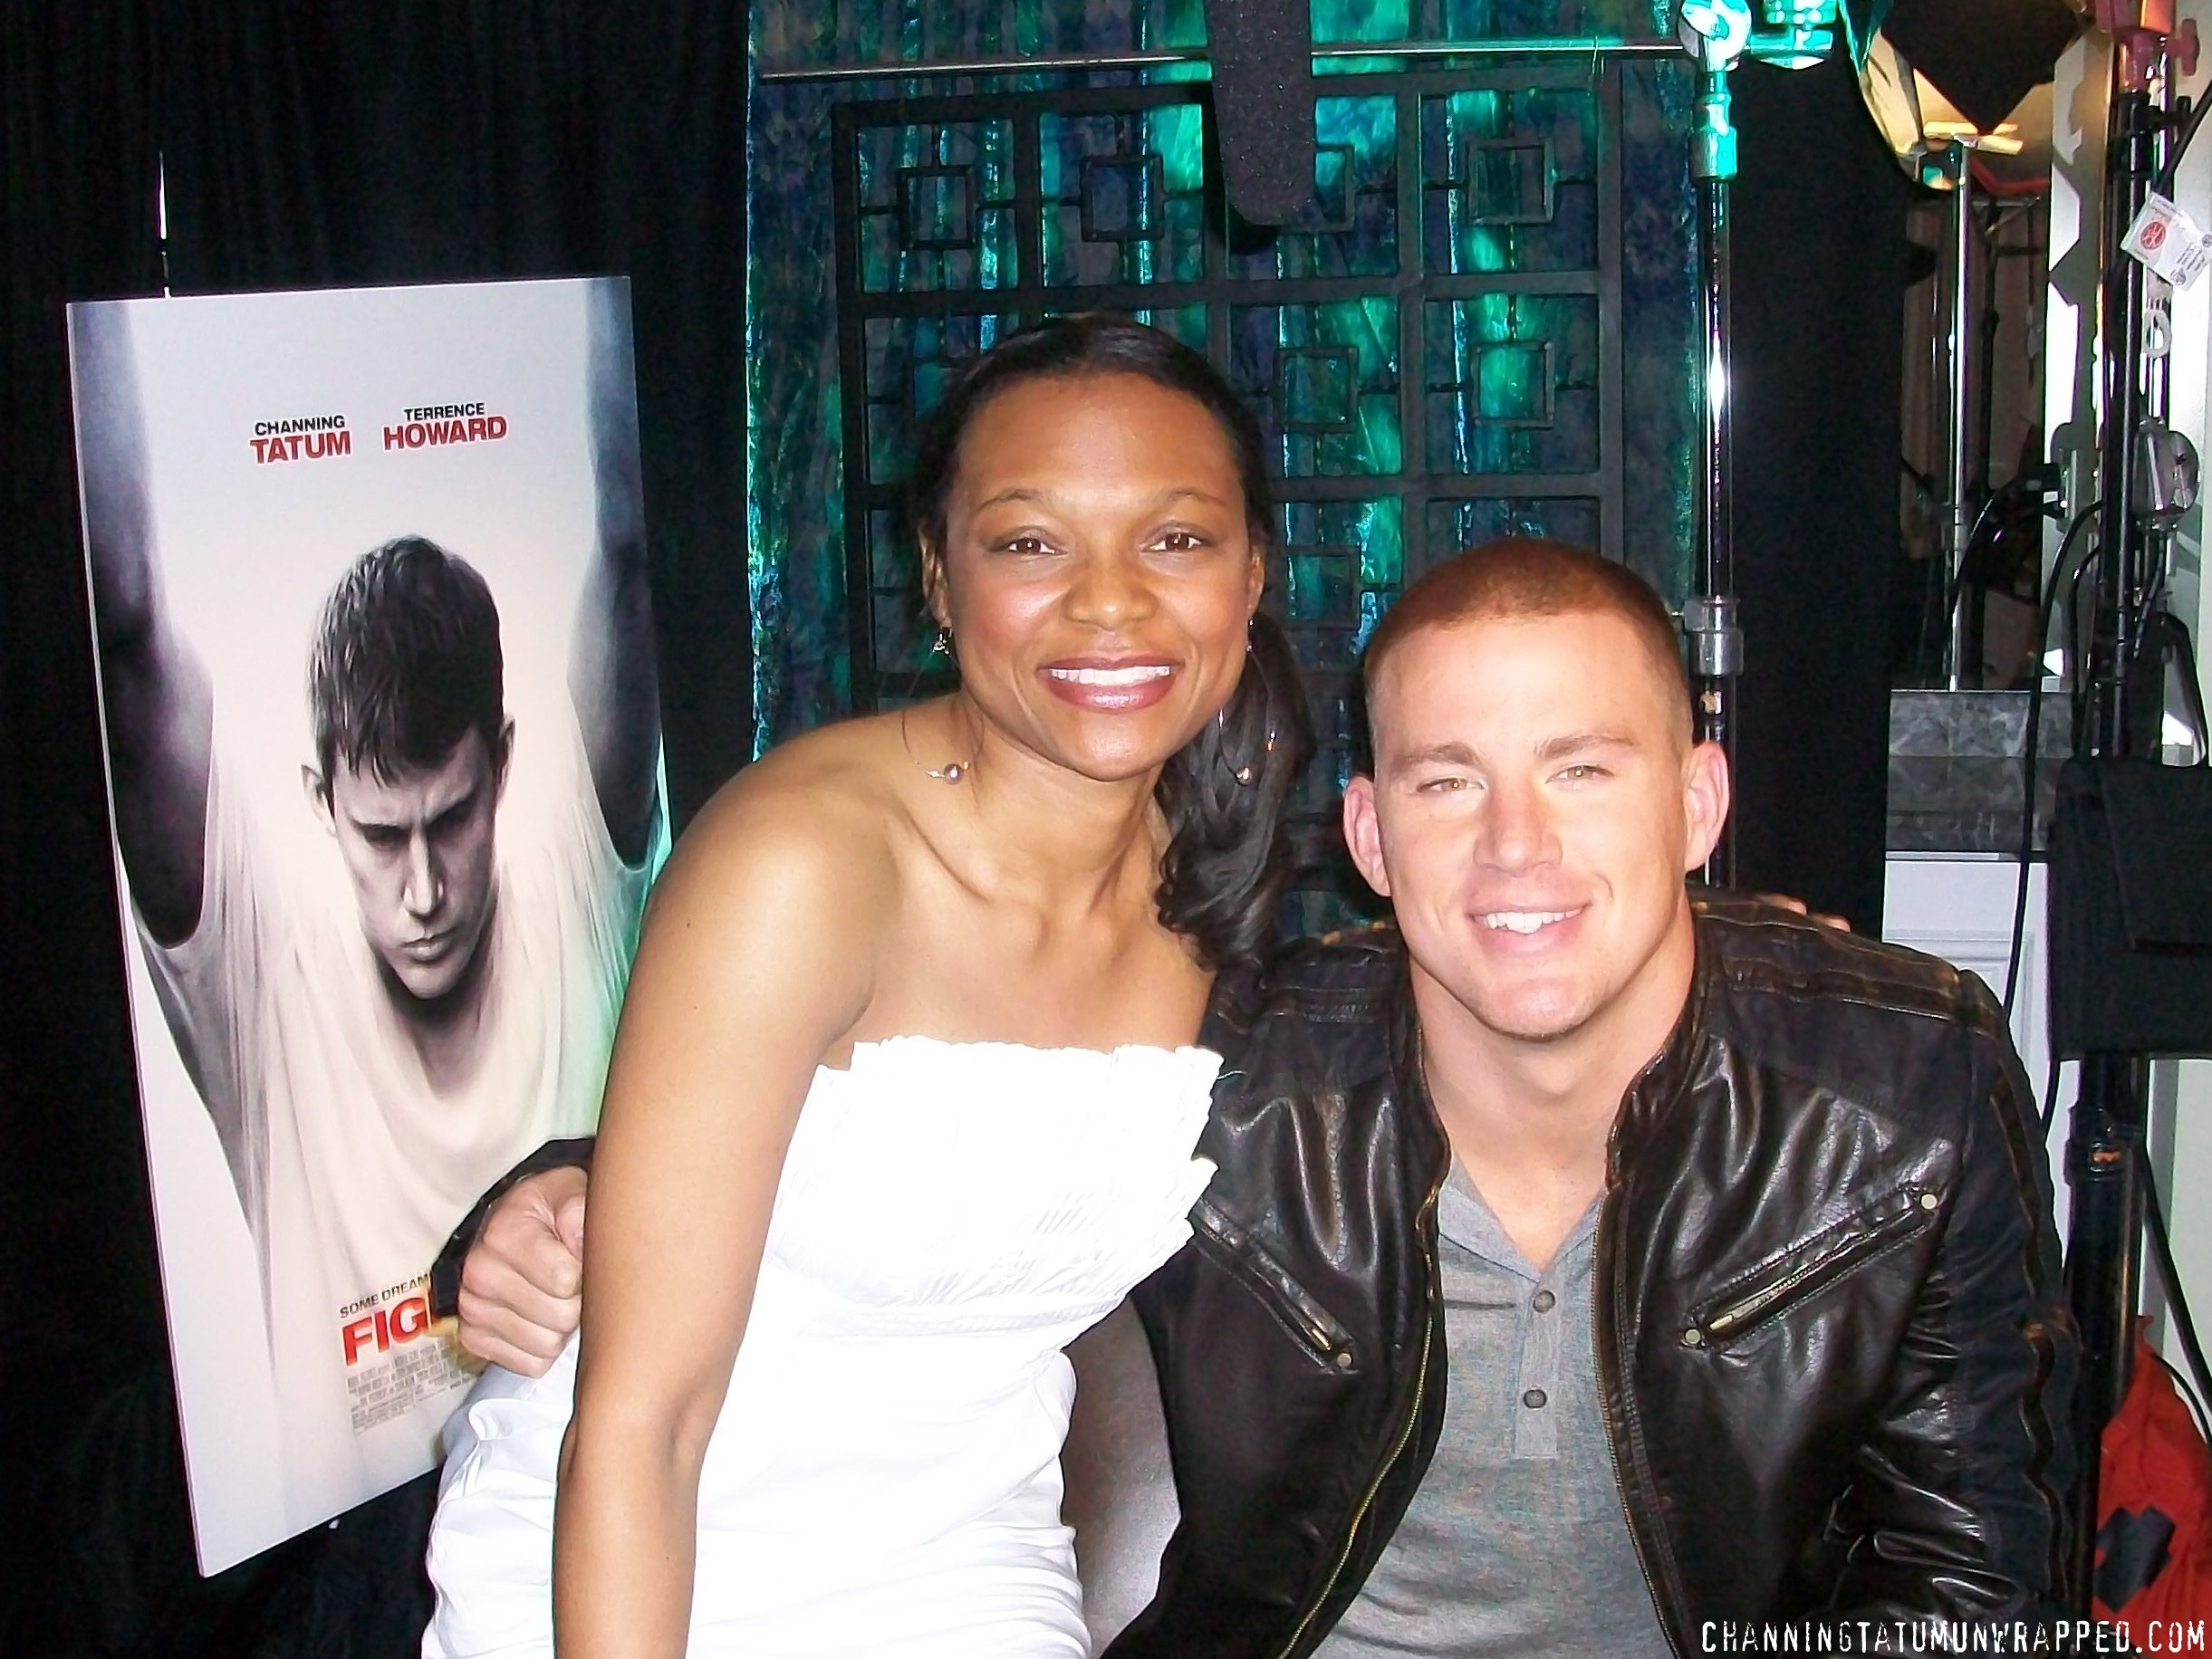 CTU Webmaster Q and Channing Tatum at 'Fighting' Press Junket